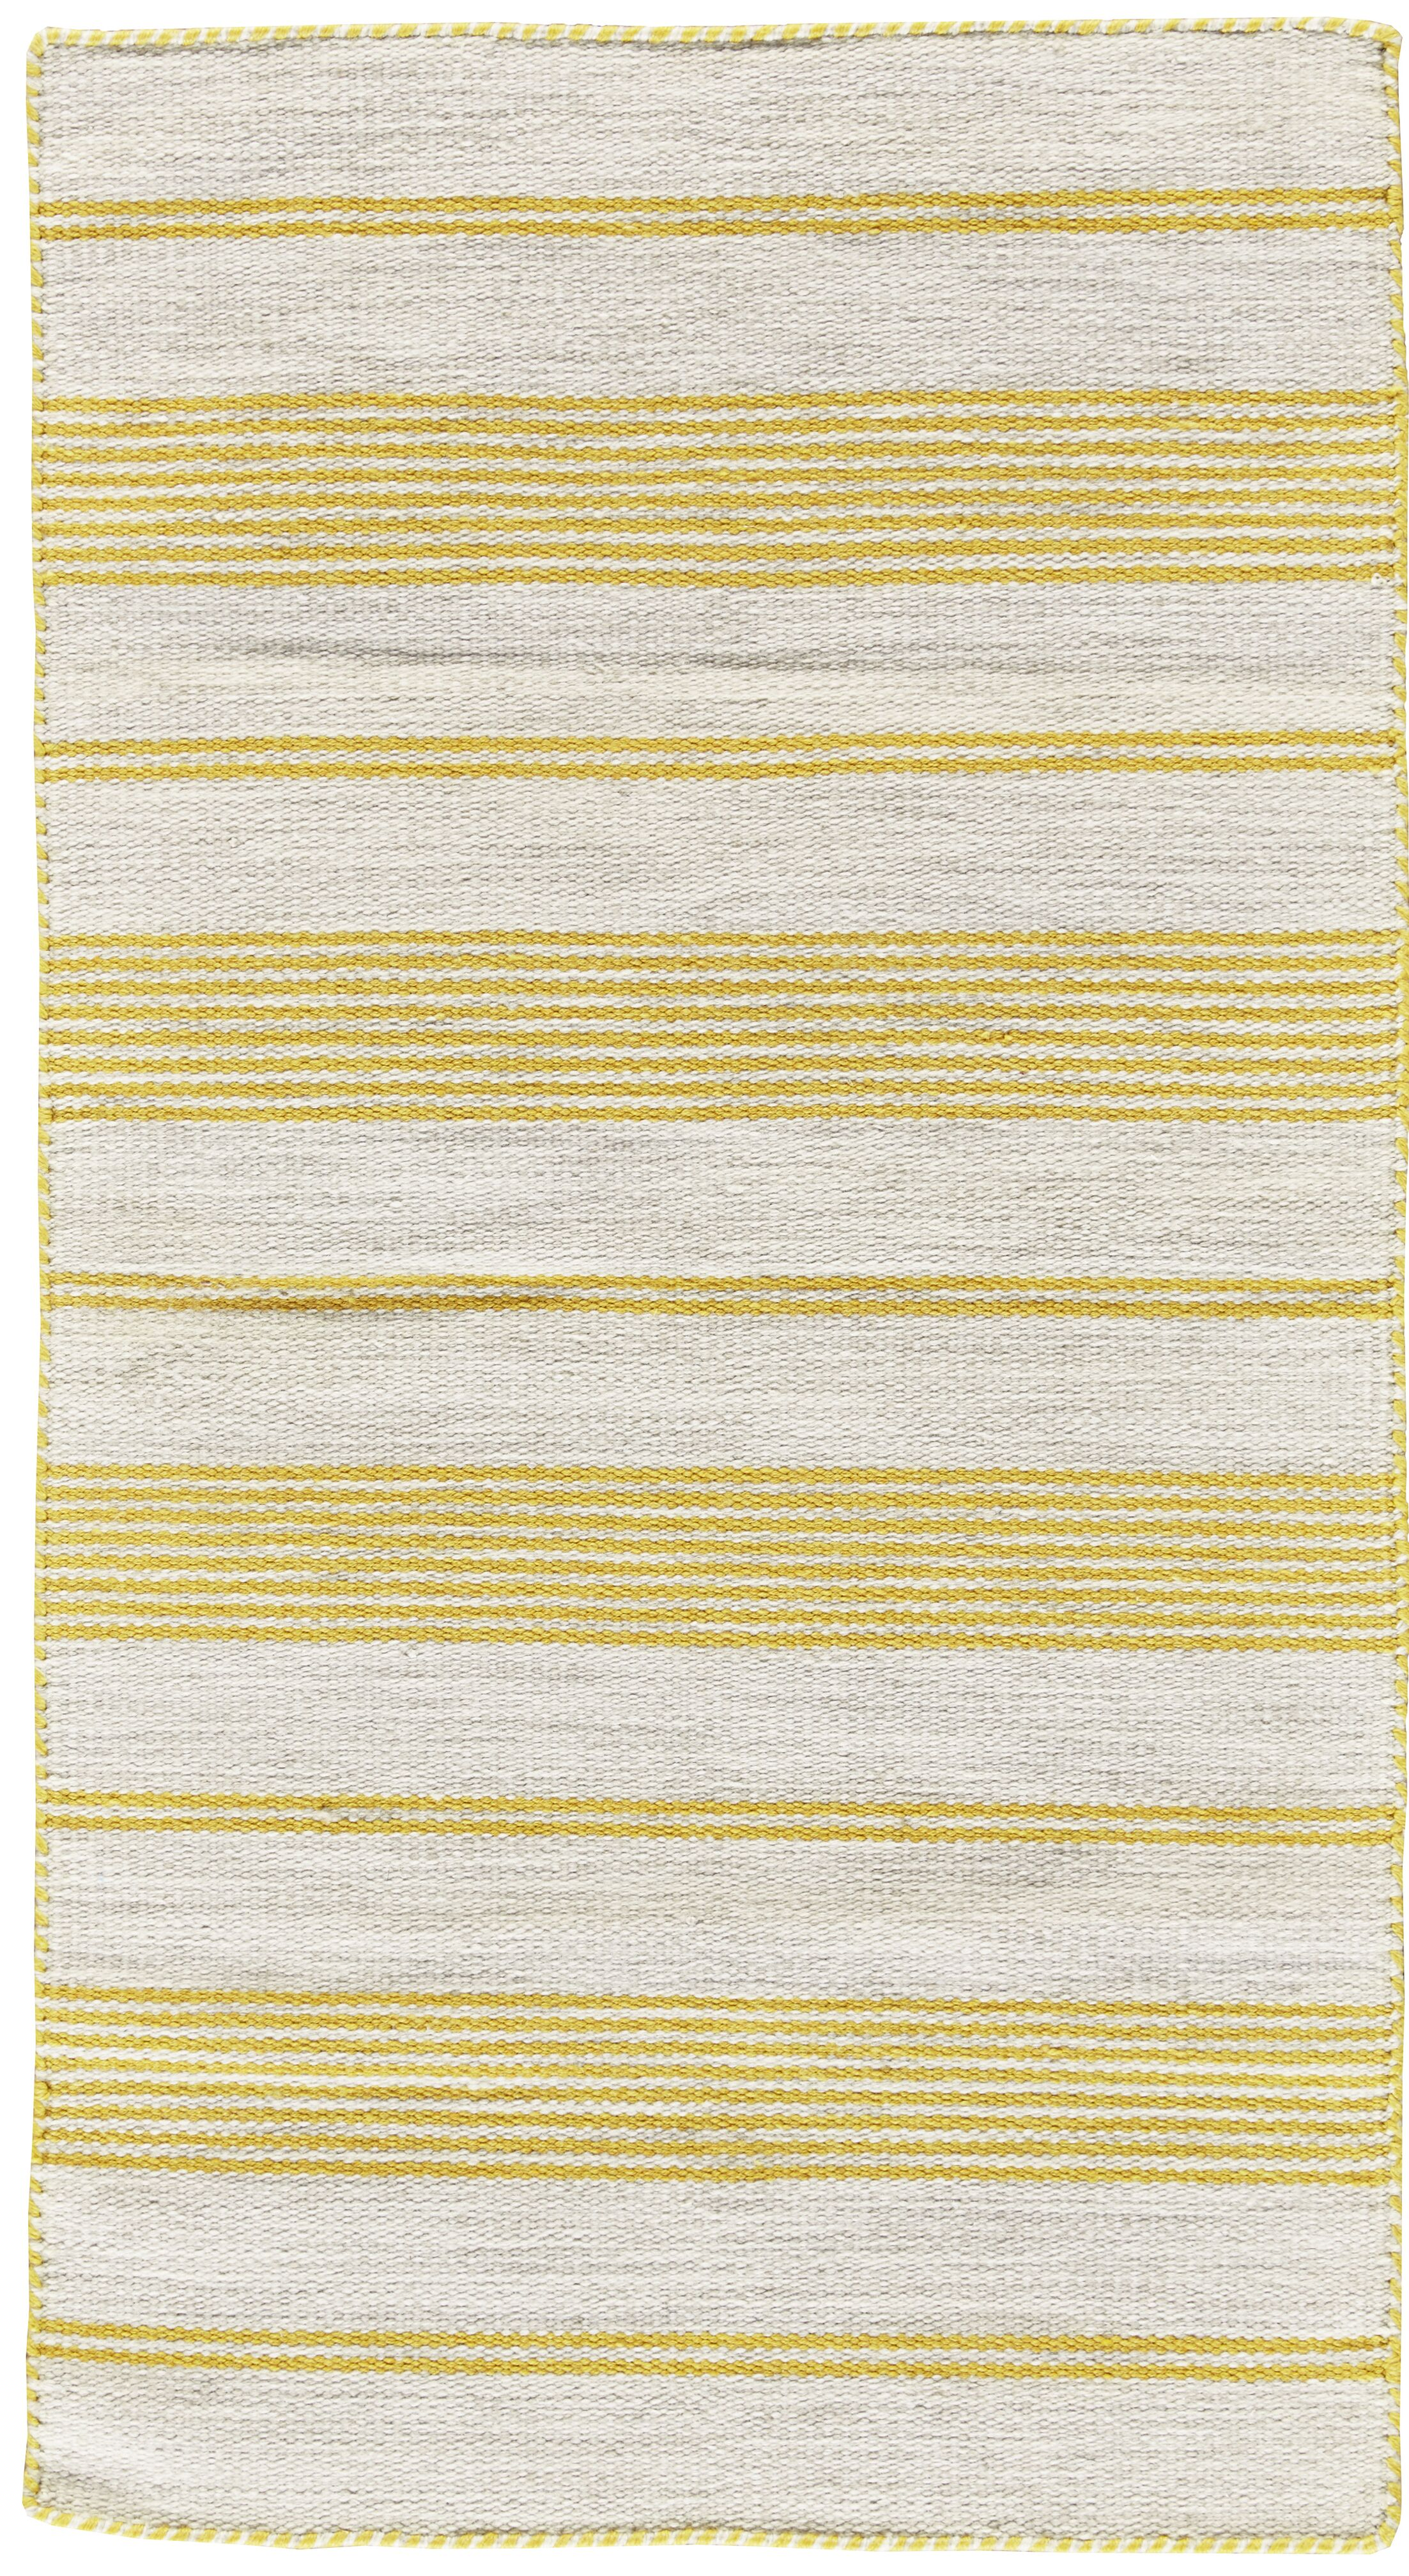 Alicea Hand-Woven Gold Area Rug Rug Size: Rectangle 8' x 11'